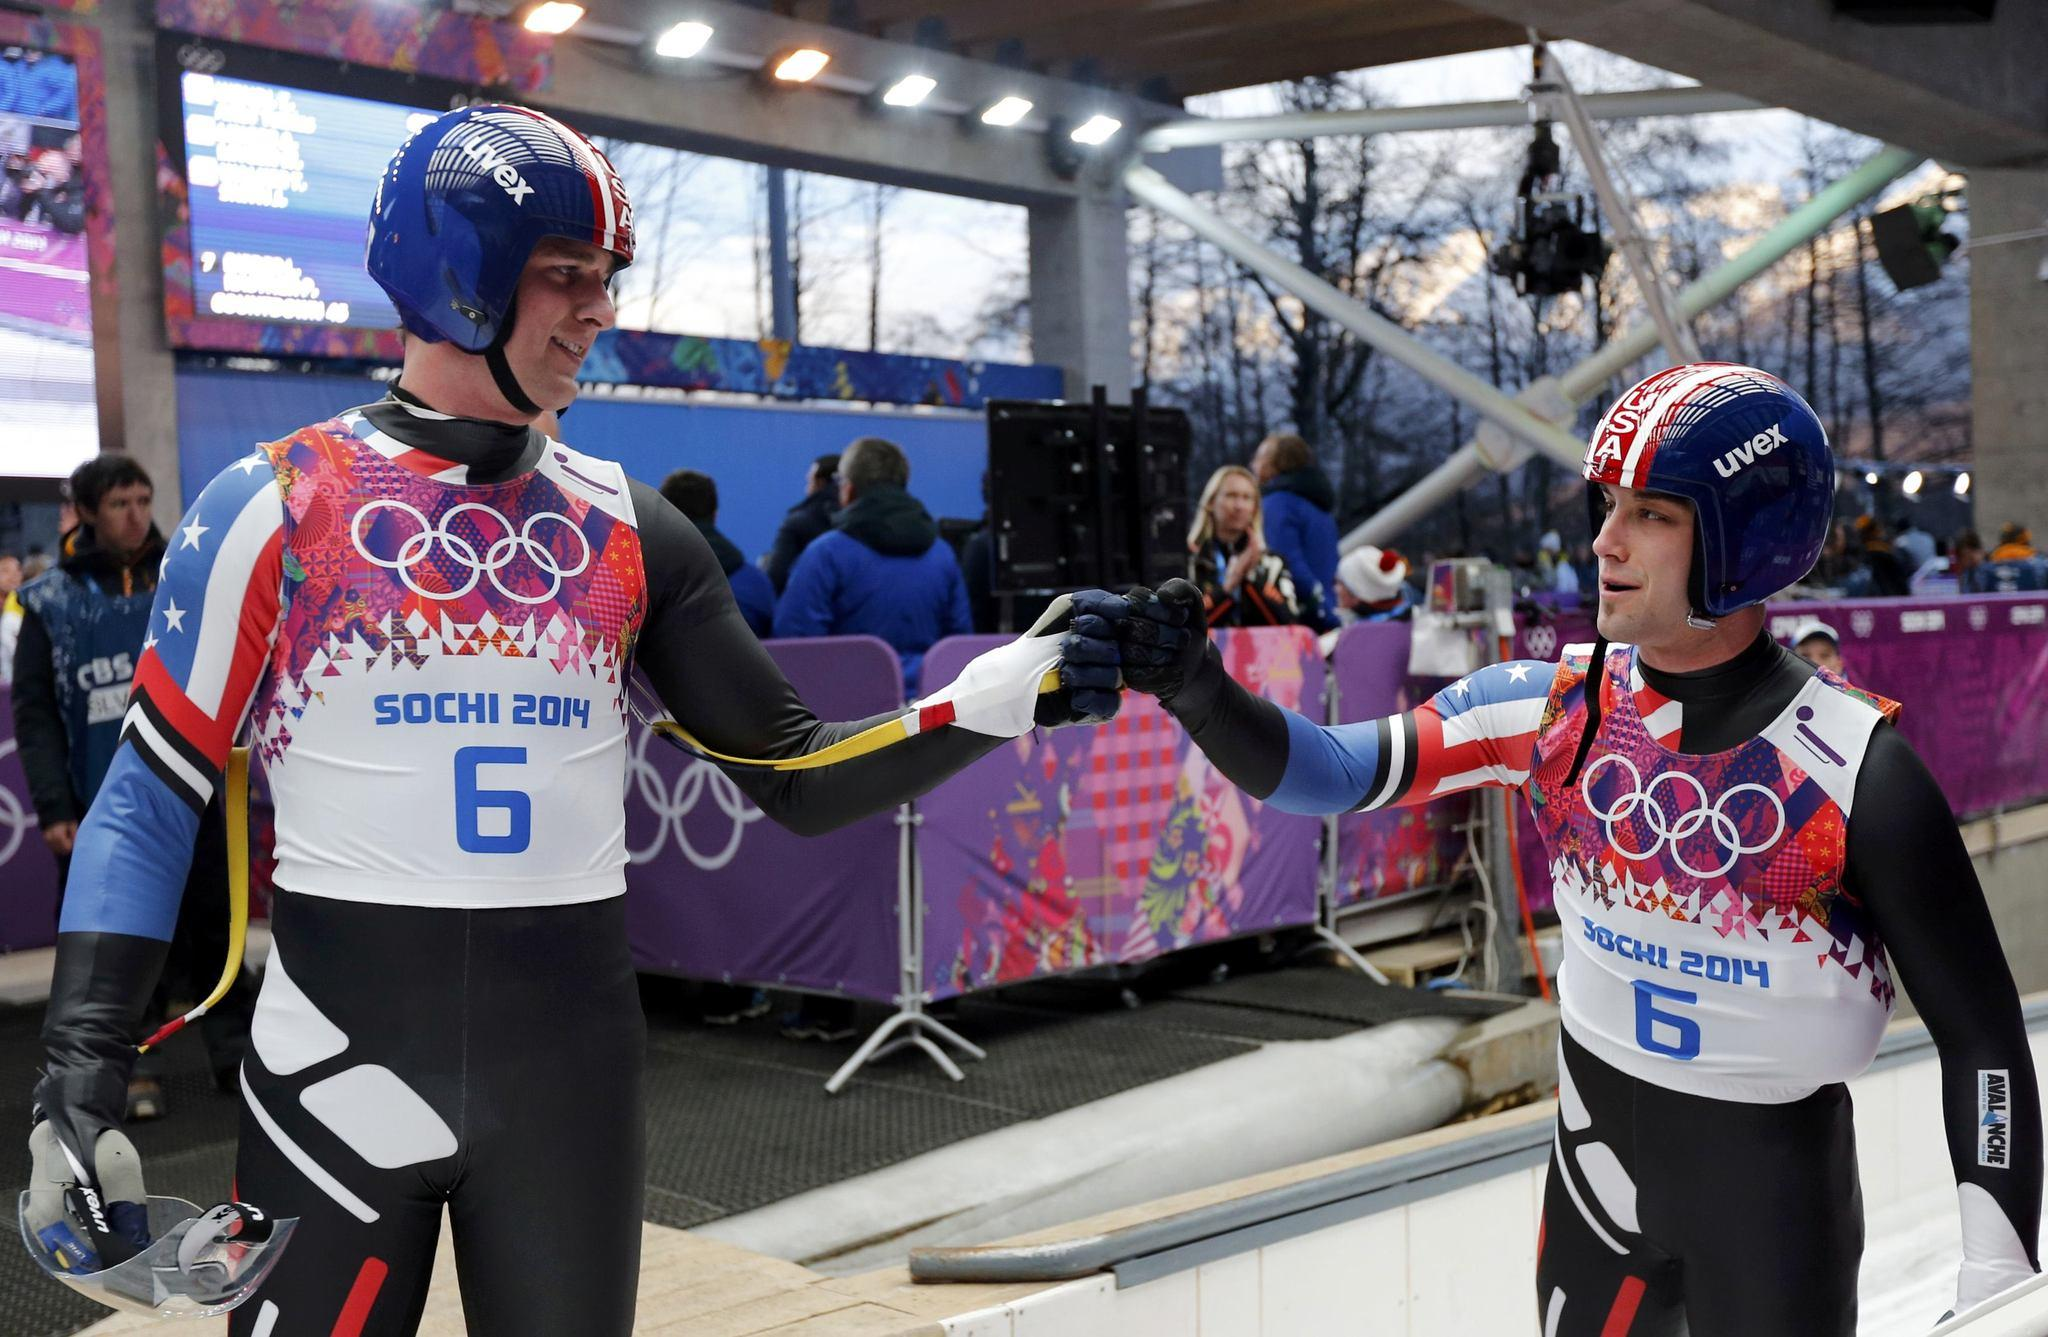 Pilot Christian Niccum (left) and Jayson Terdiman bump fists after competing in the men's luge doubles event.